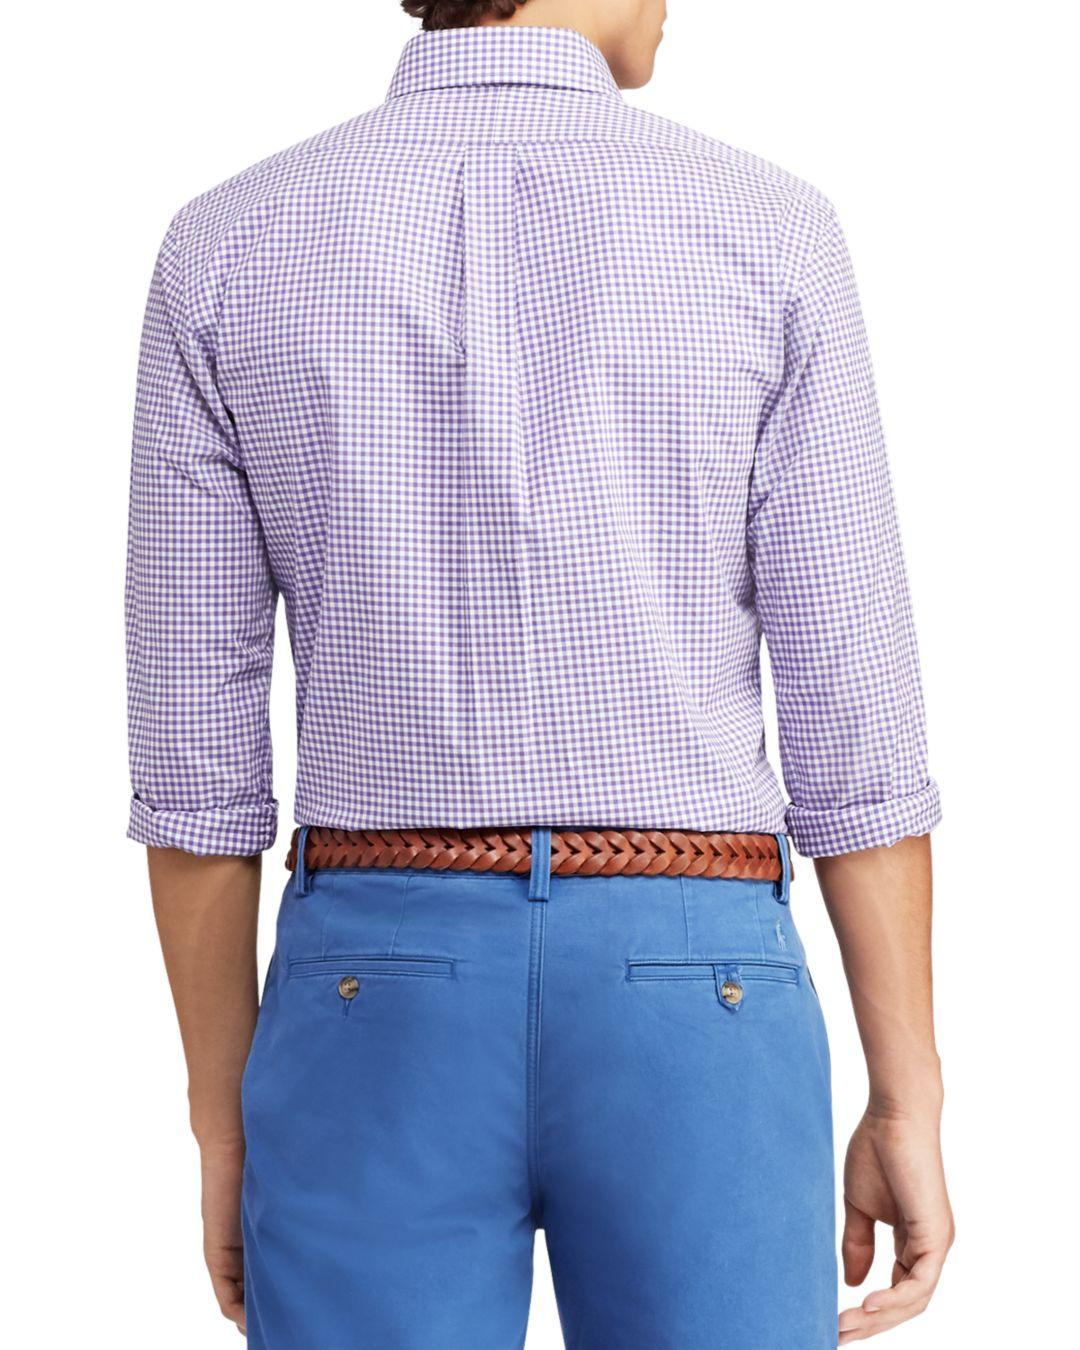 b5381e9f0dd ... clearance lyst polo ralph lauren gingham slim fit button down poplin  shirt in purple for men